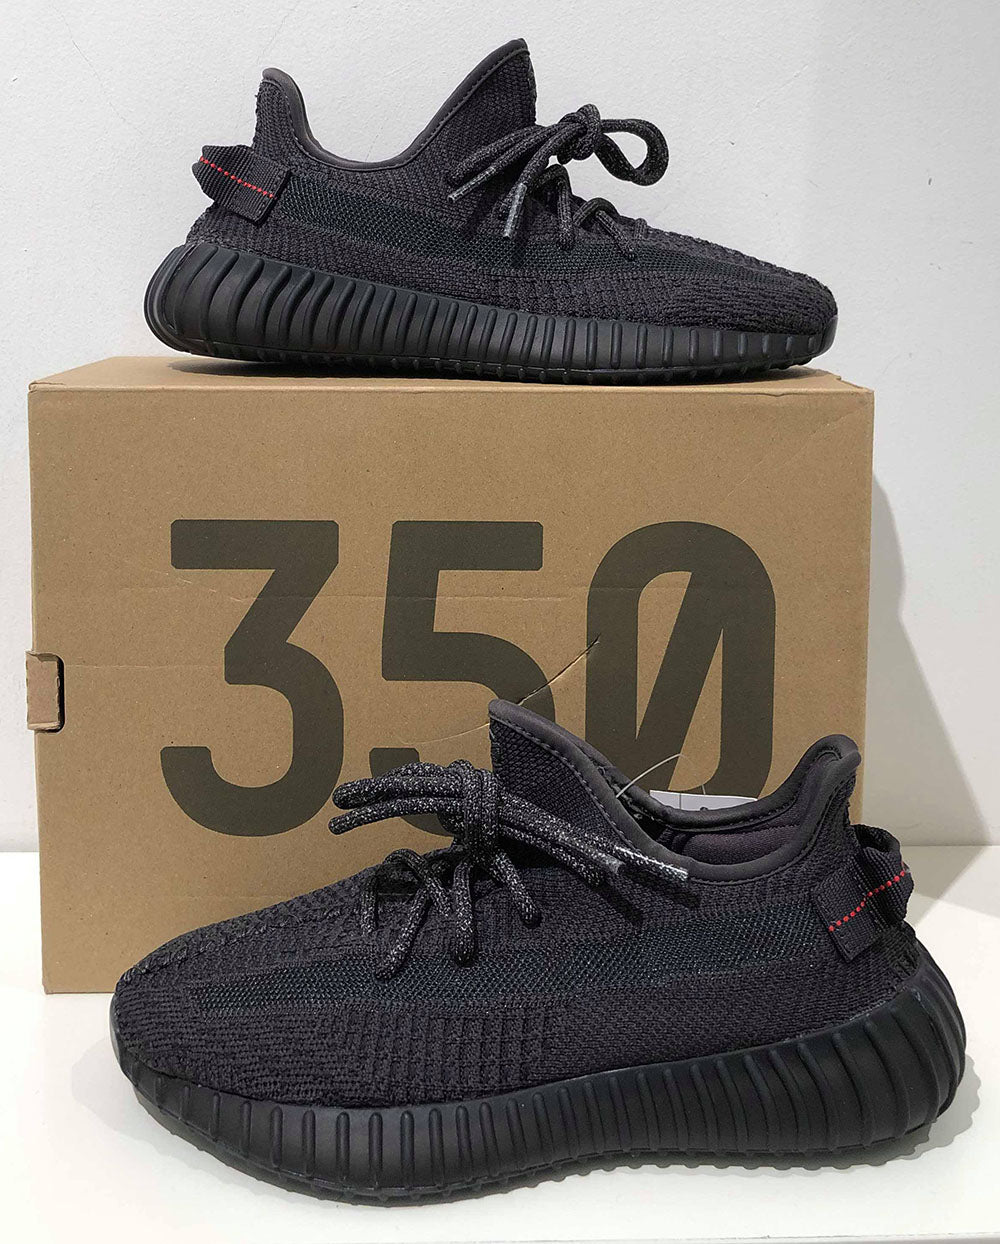 How to legit check v2 Black yeezy 350